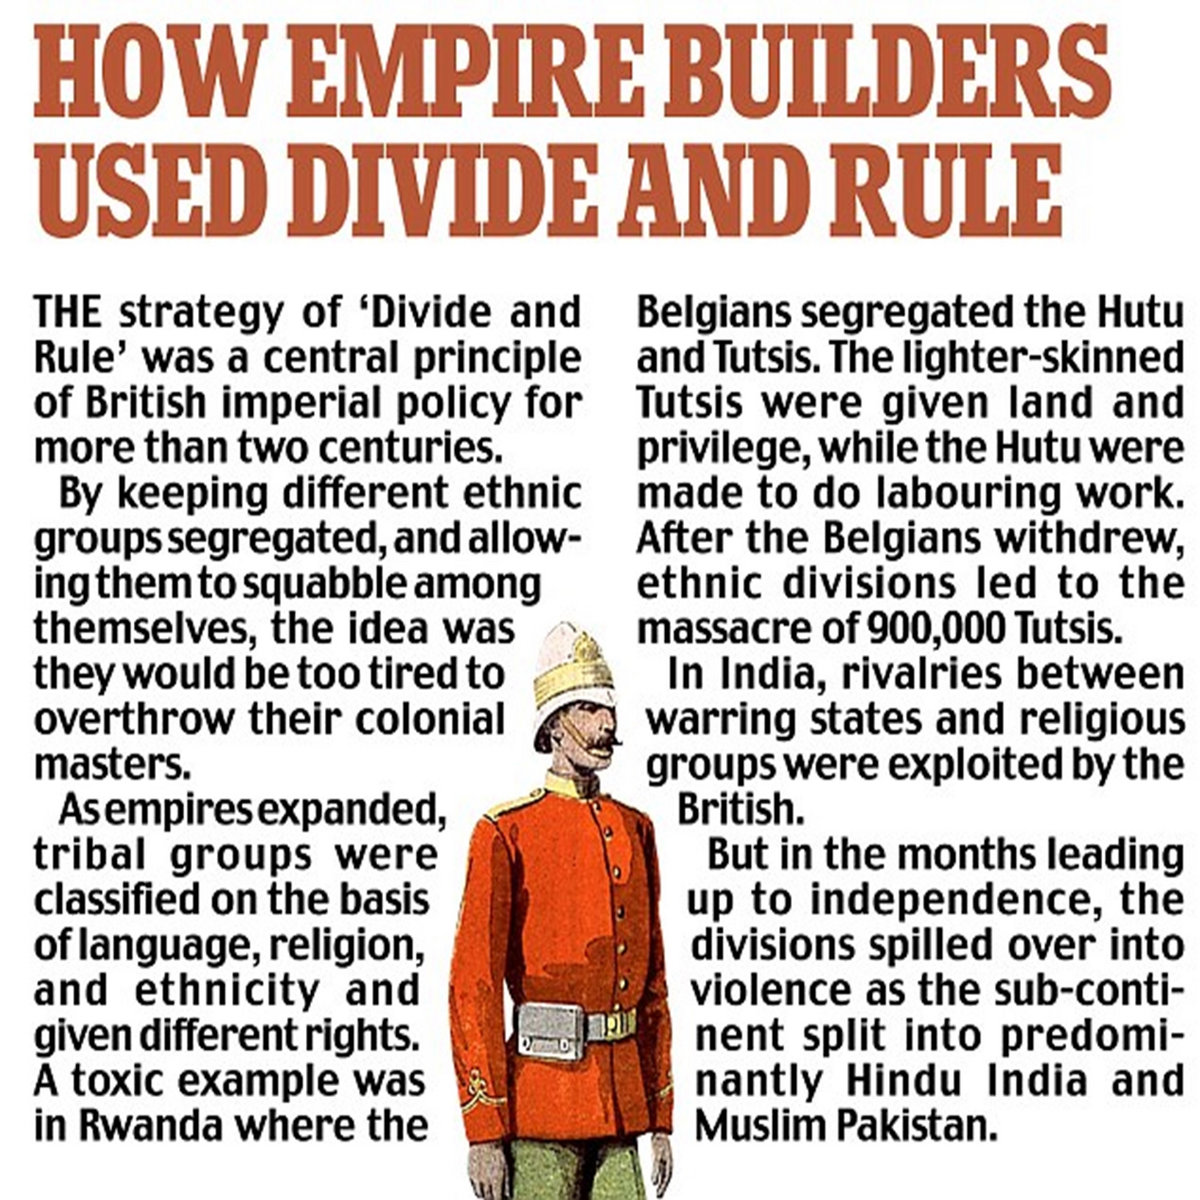 Divide and rule